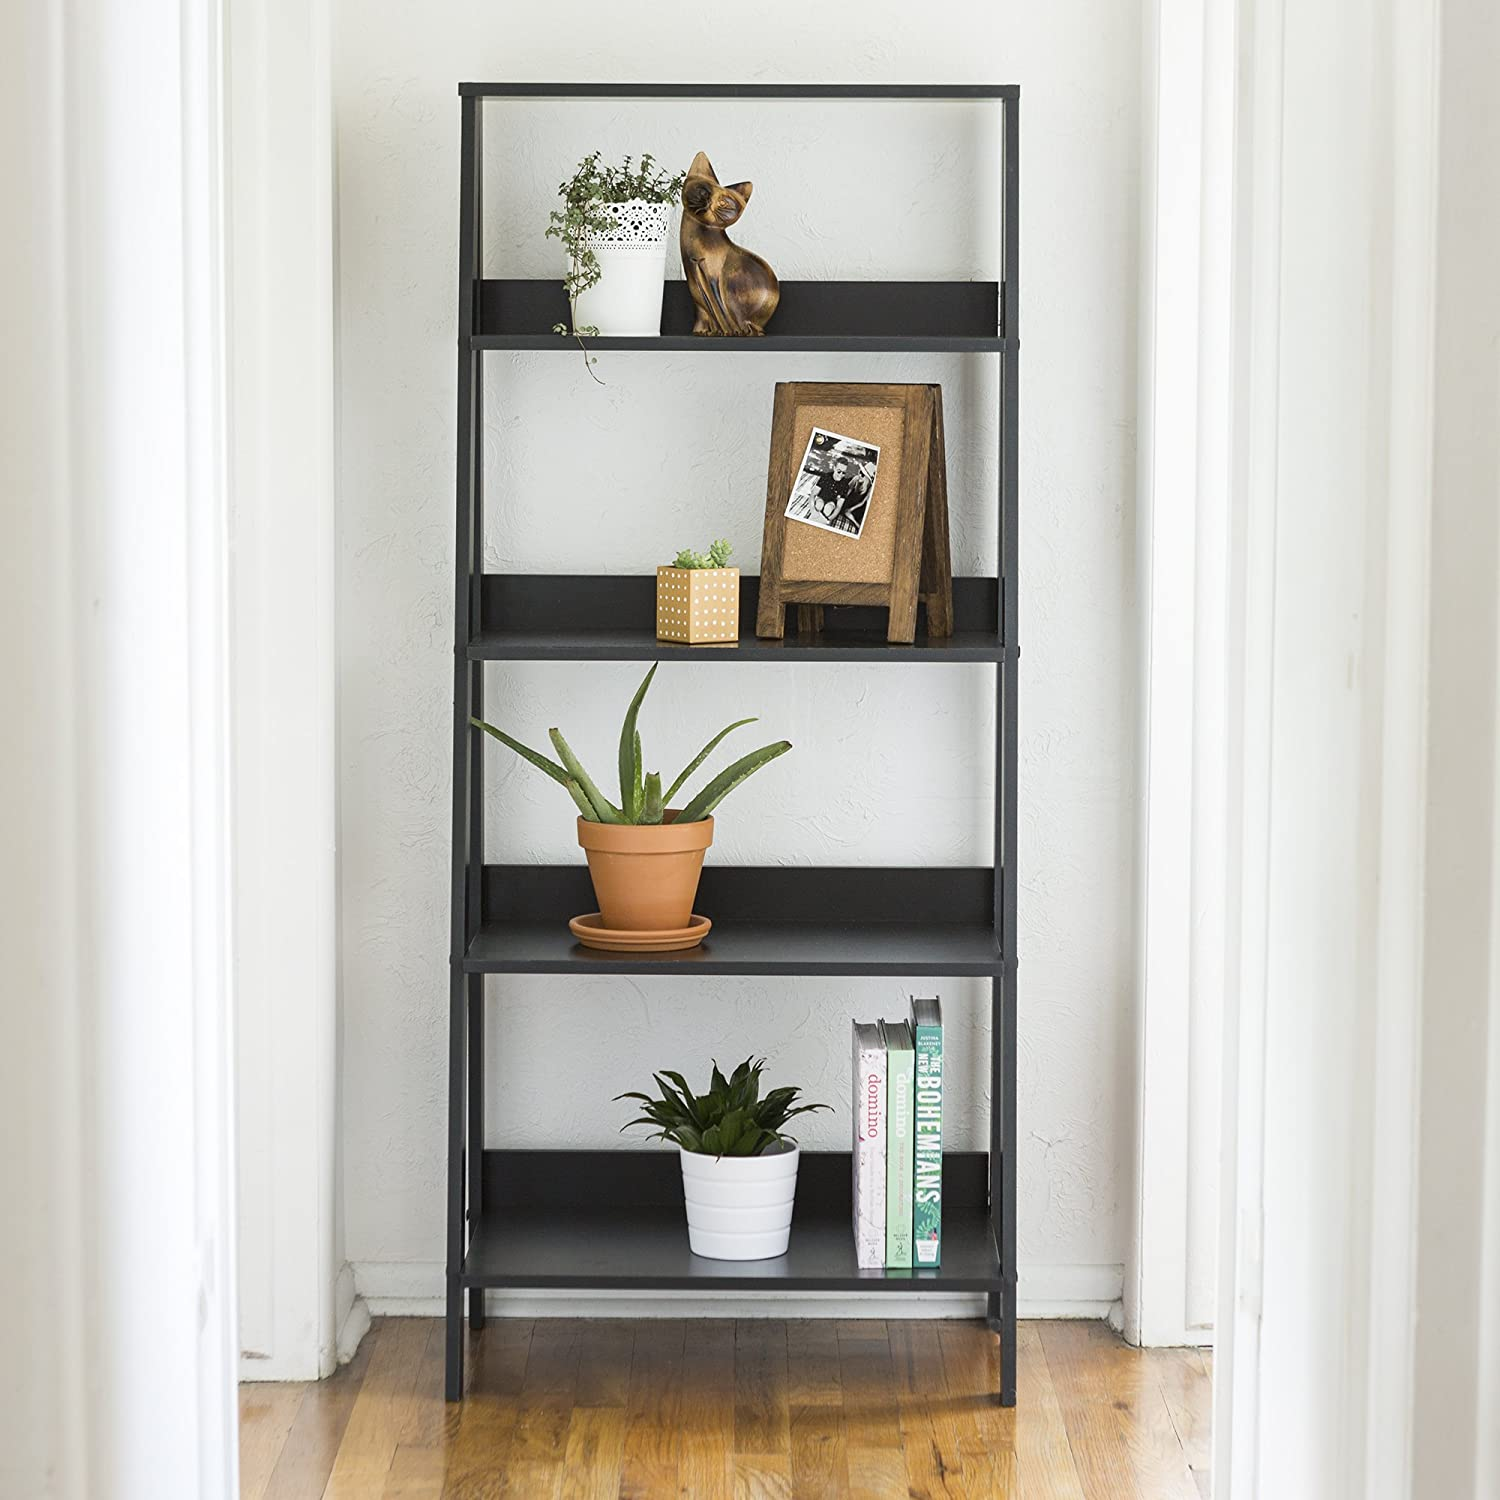 WE Furniture 55 Wood Ladder Bookshelf – Black